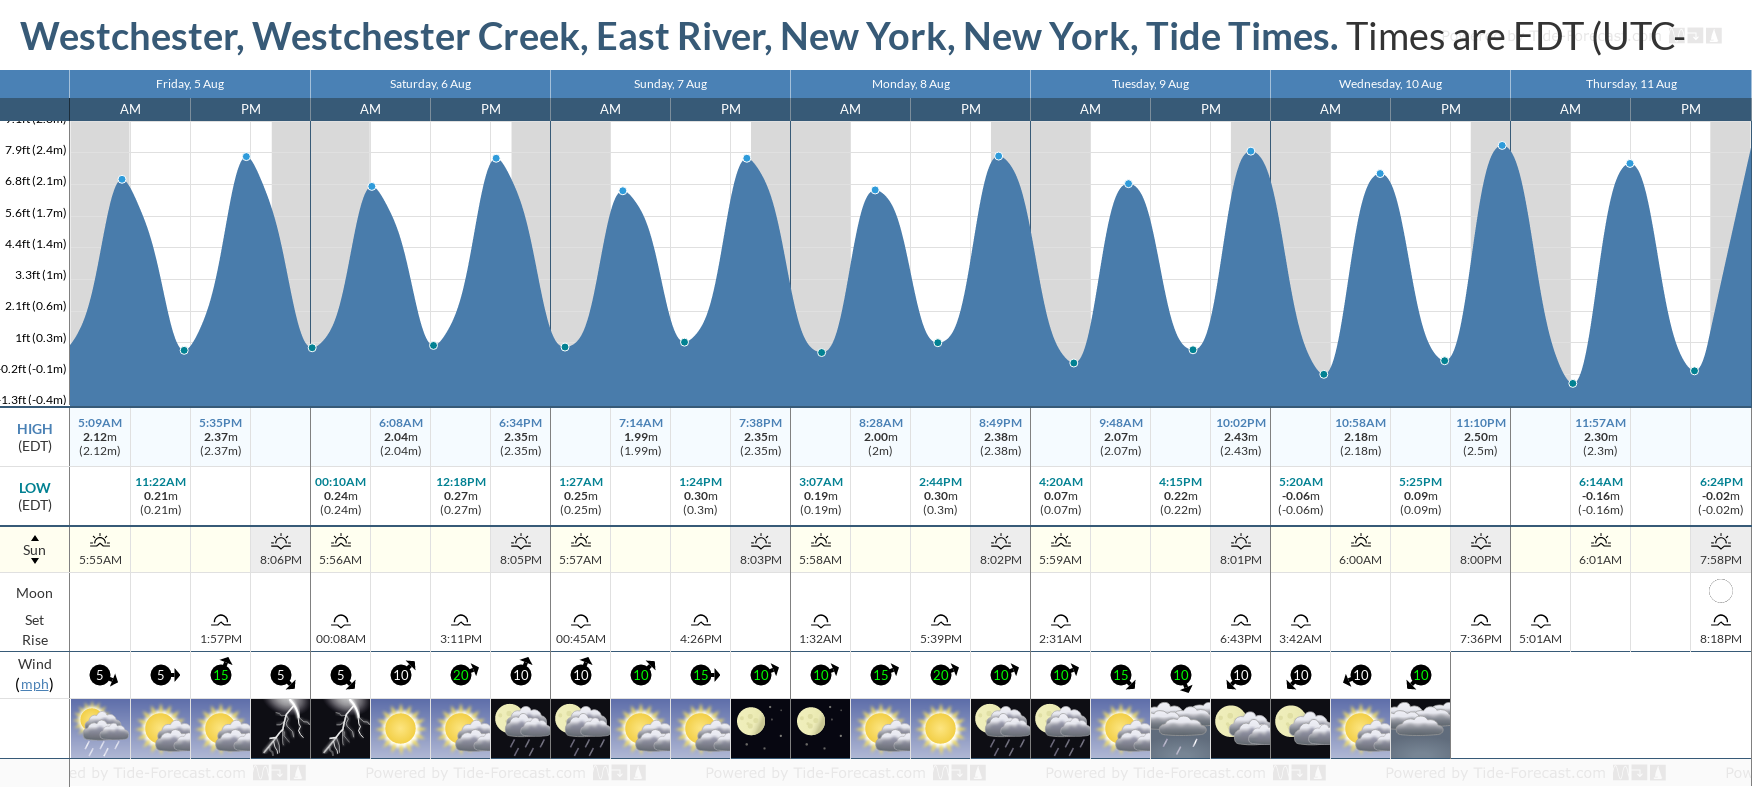 Westchester, Westchester Creek, East River, New York, New York Tide Chart including high and low tide tide times for the next 7 days